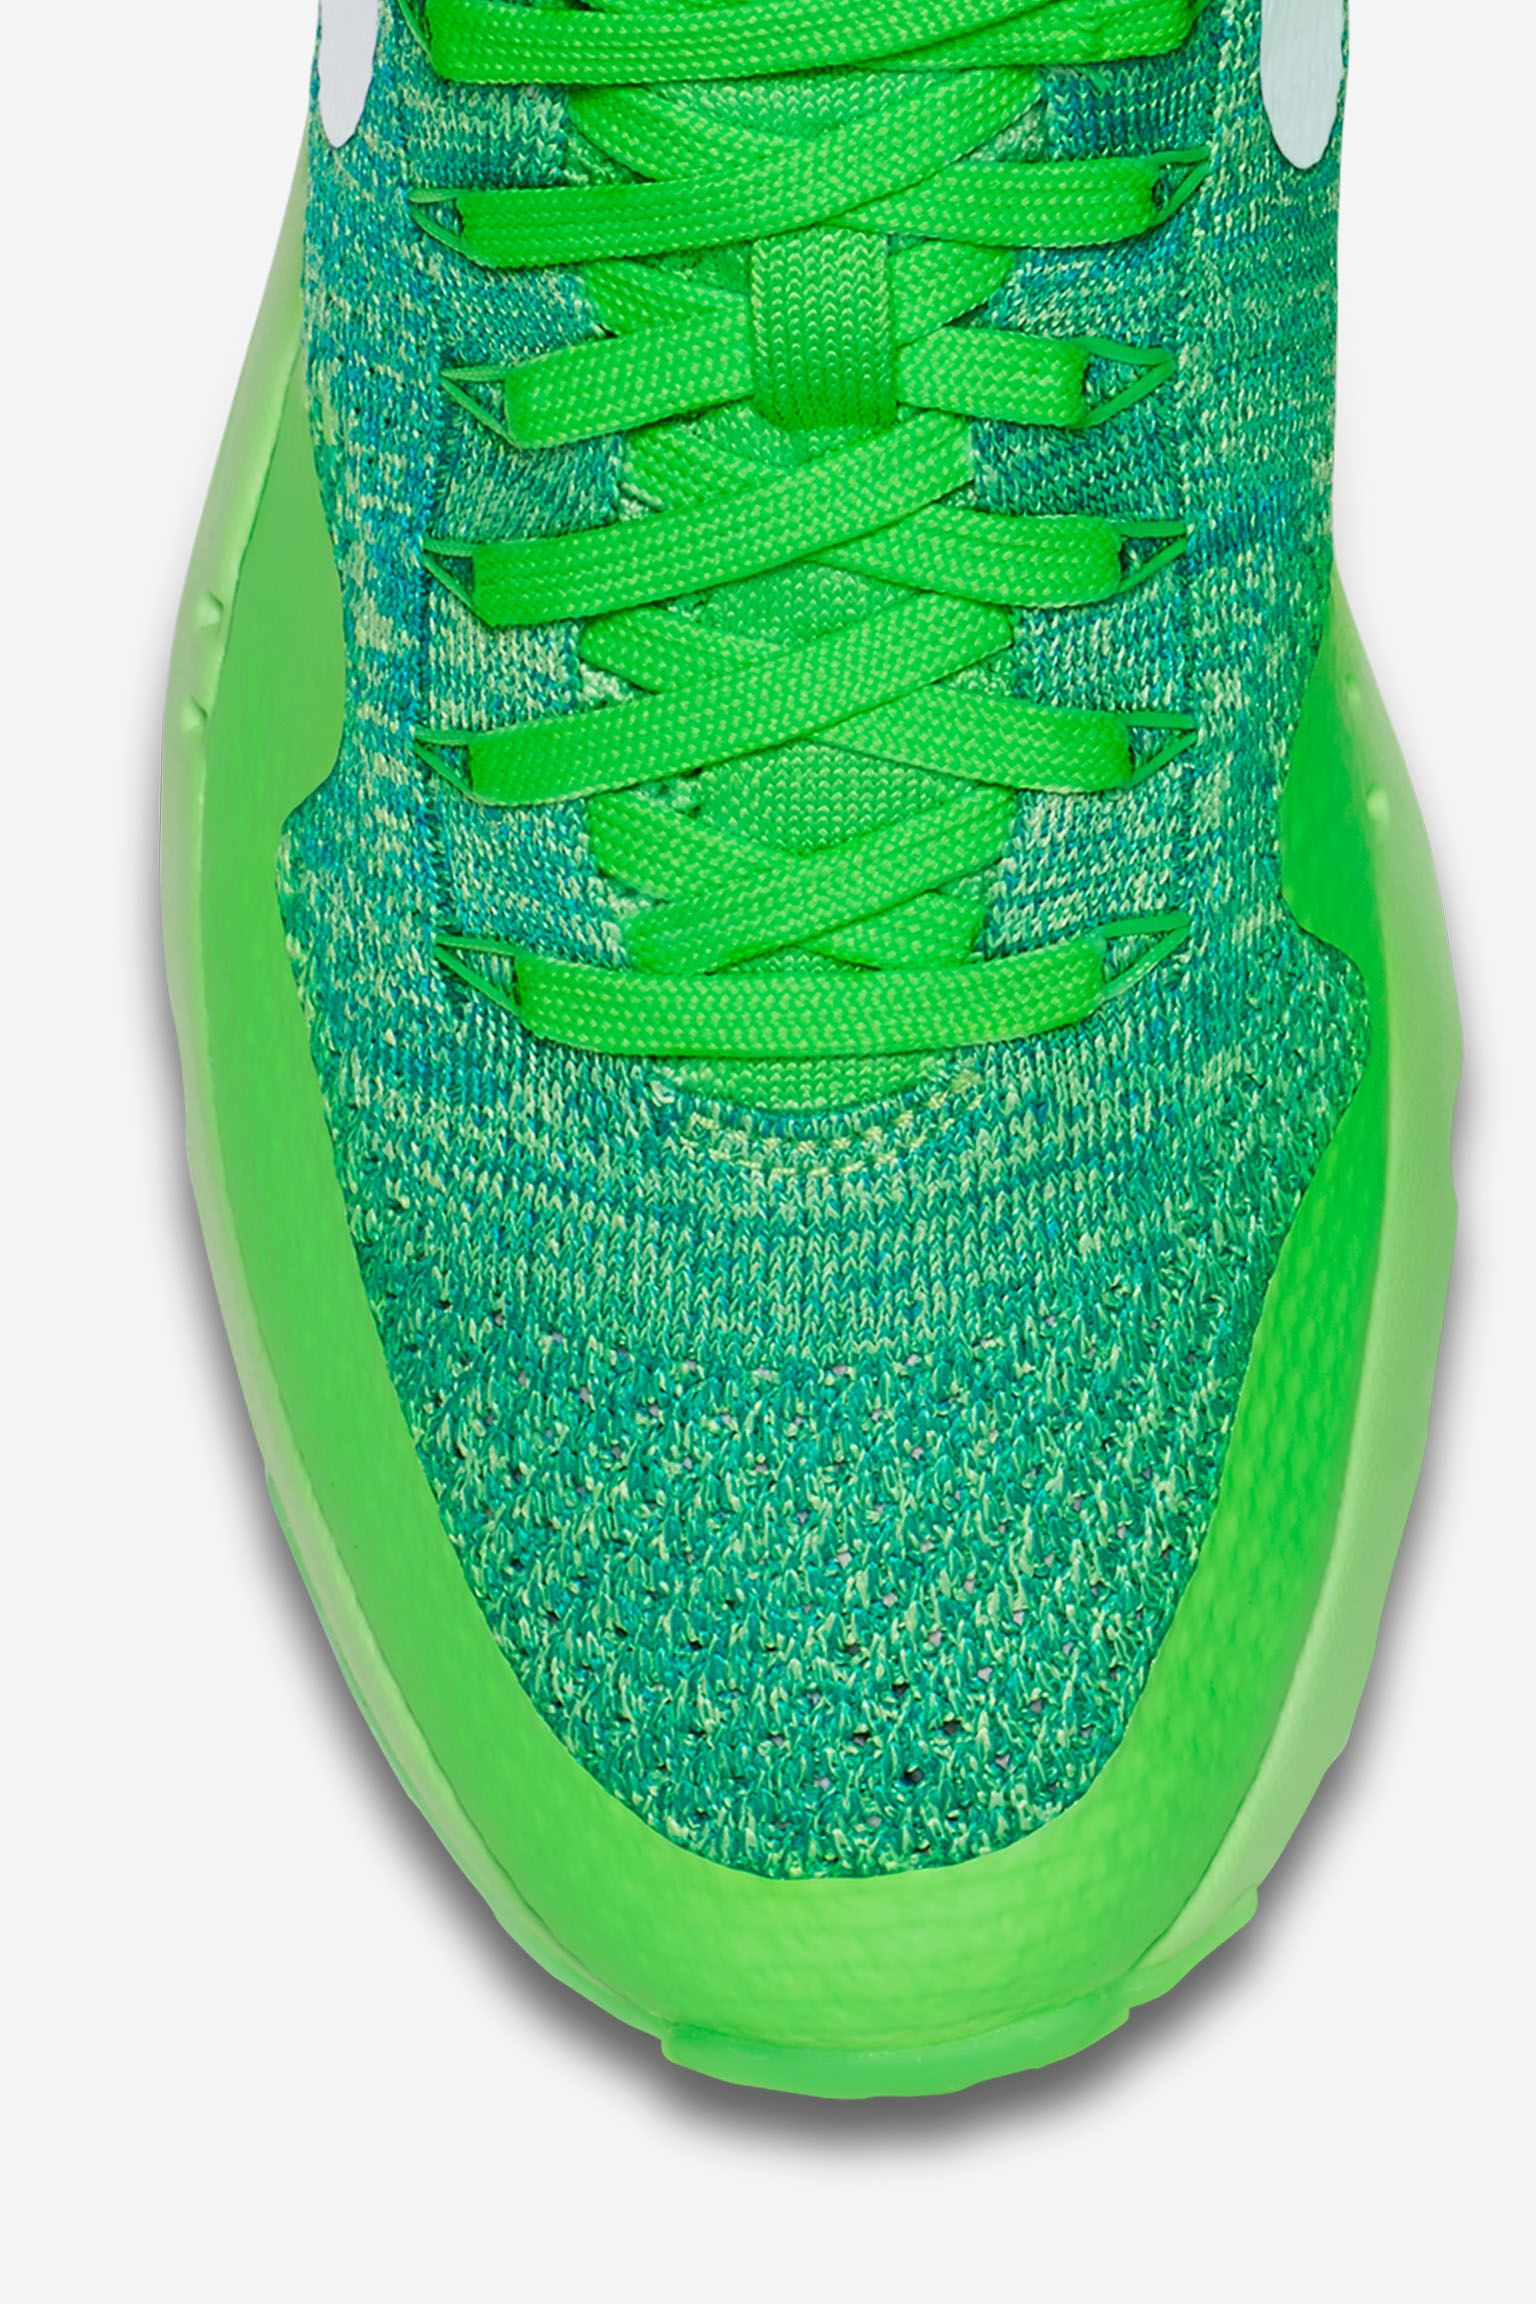 National Air: Nike Air Max 1 Ultra Flyknit 'Voltage Green'